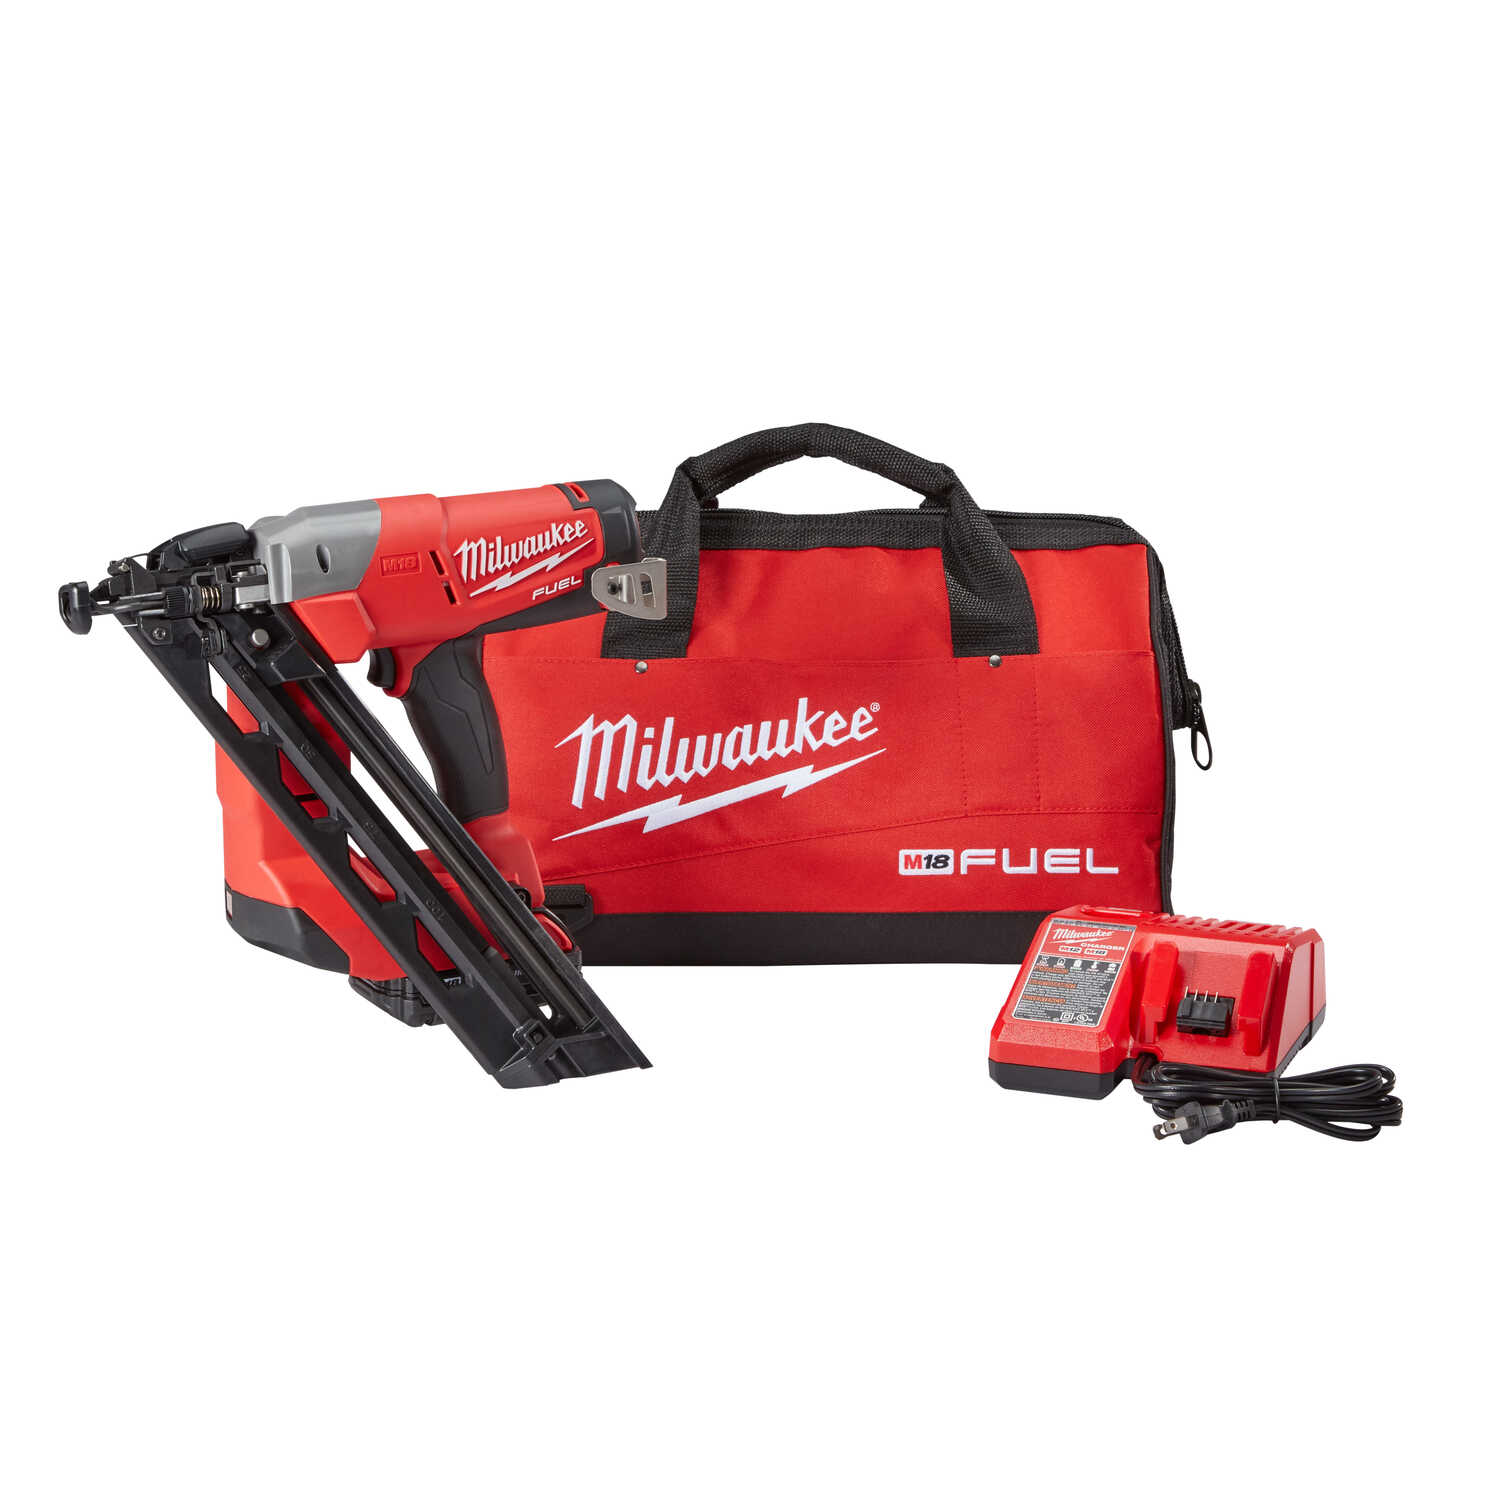 Milwaukee  M18 FUEL  15 Ga. Angled Finish Nailer  Kit 18 volt